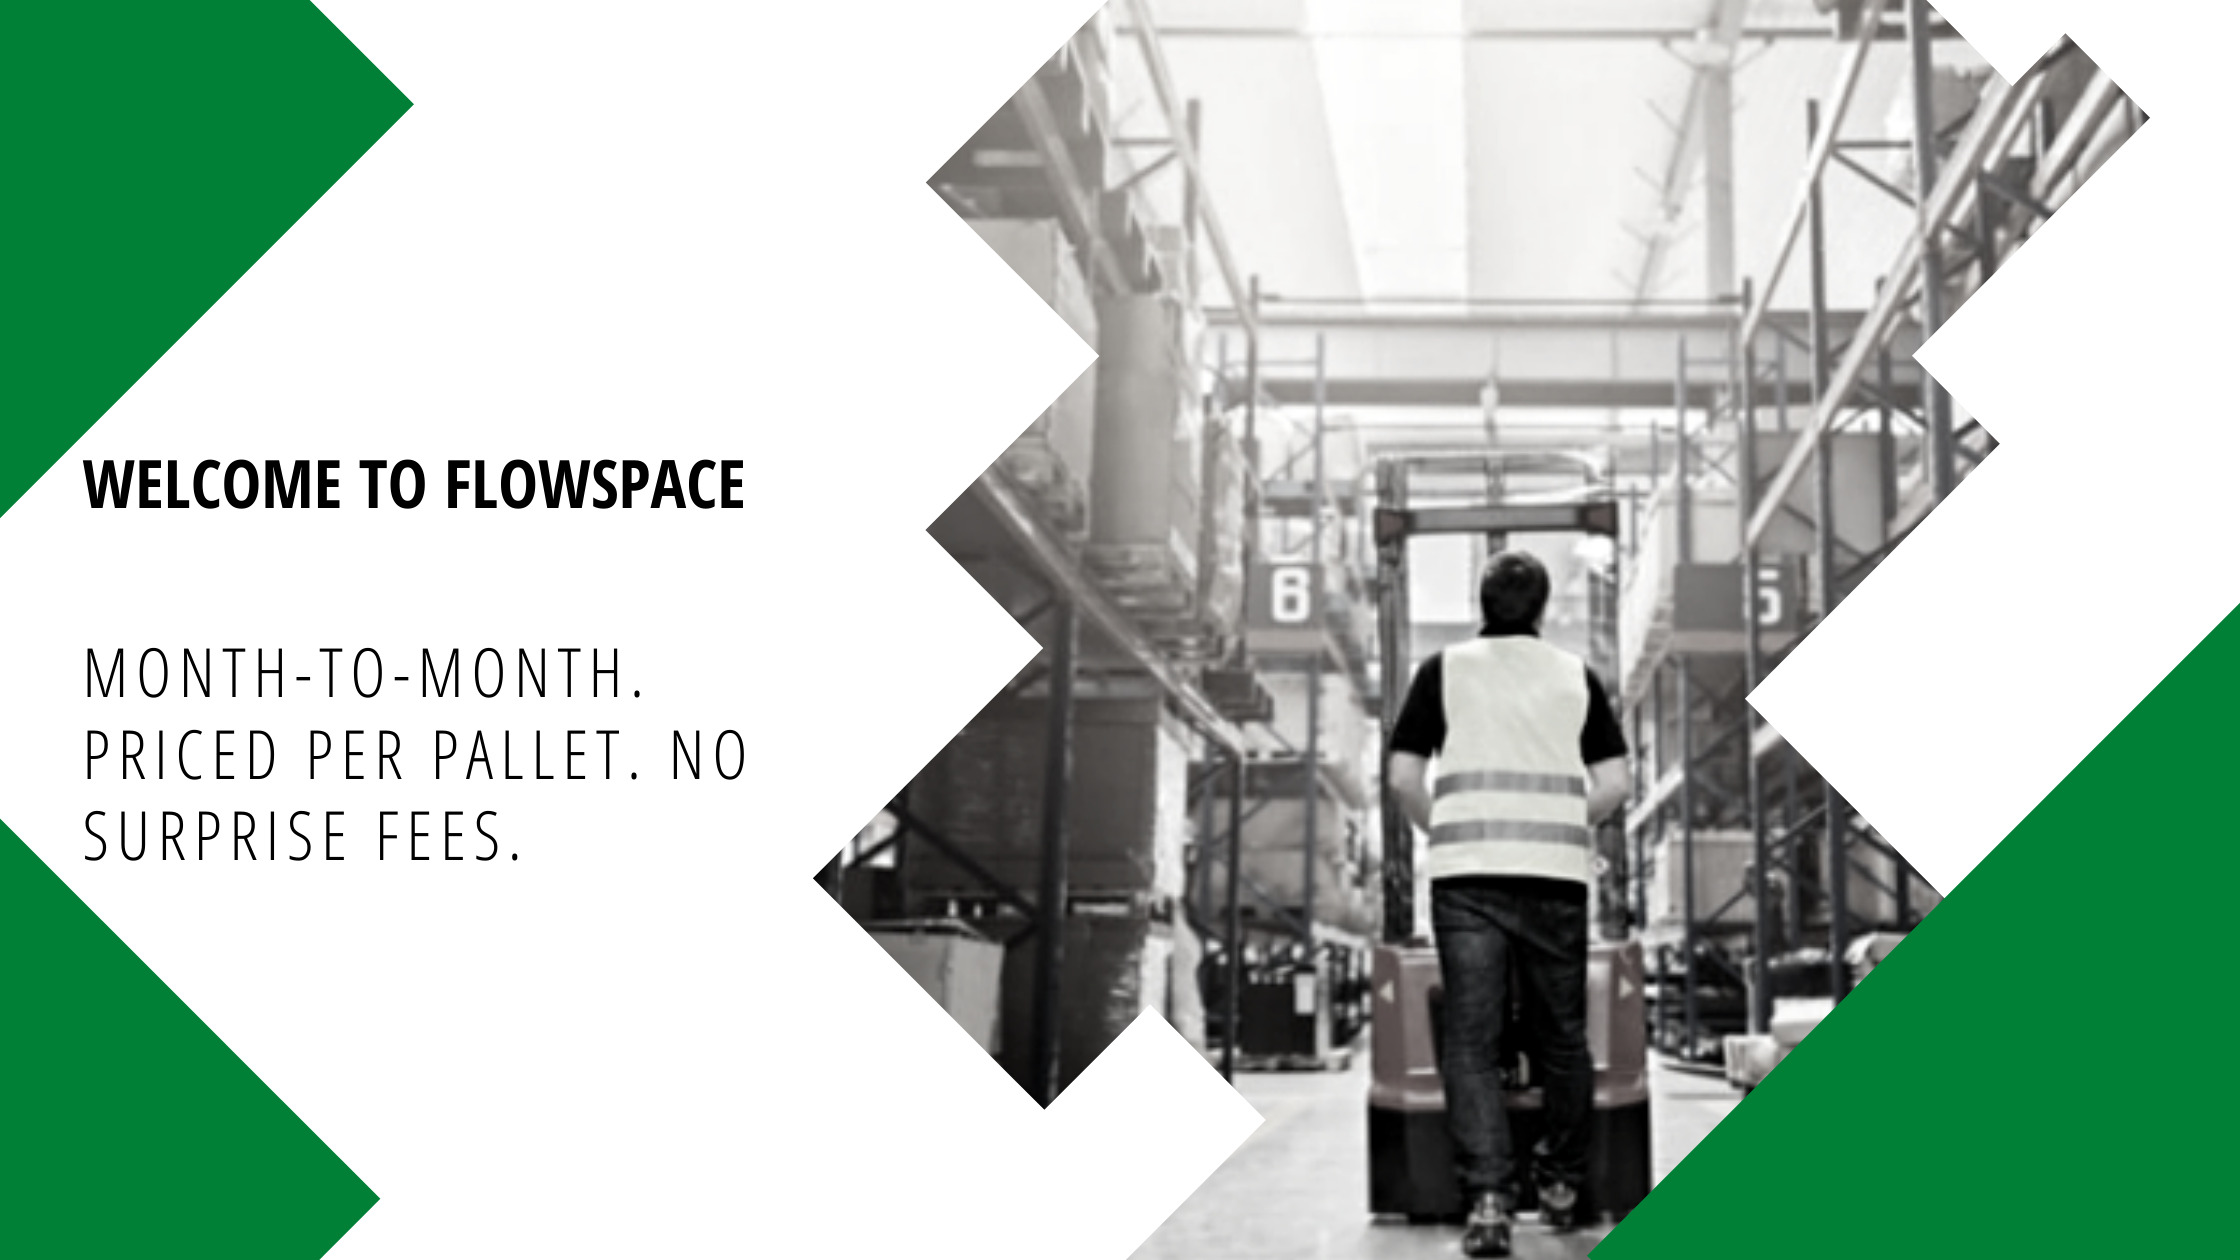 Month-to-Month. Priced Per Pallet. No Surprise Fees.